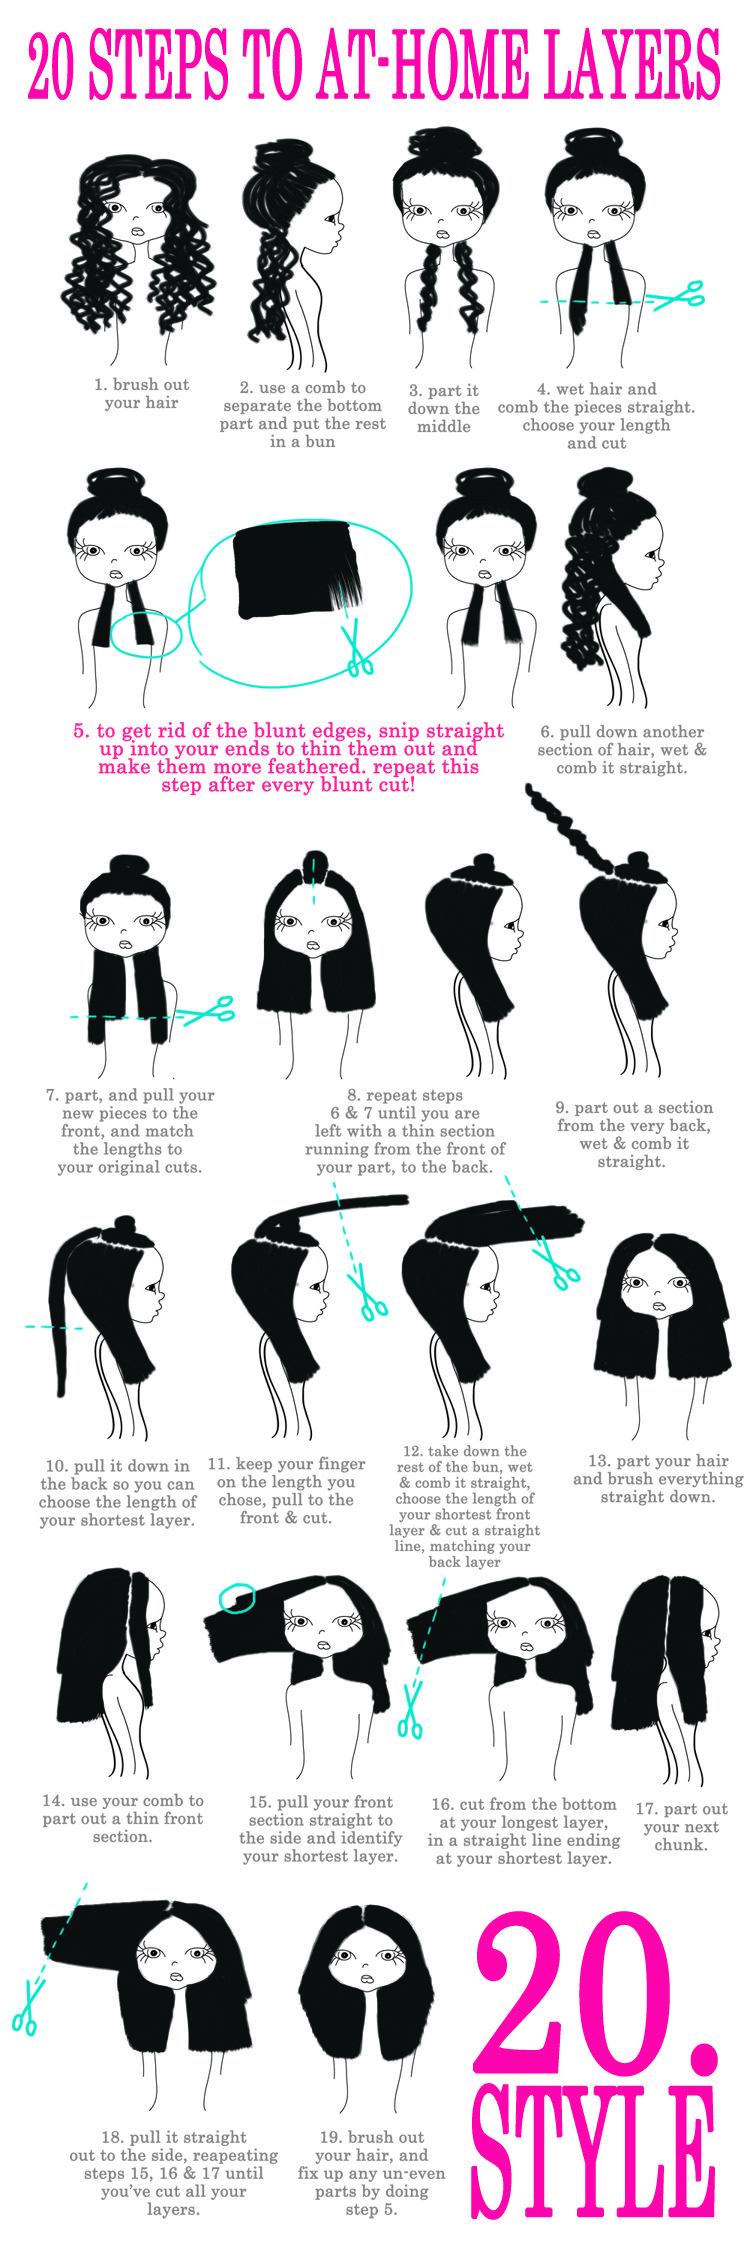 Outstanding Friend Made This Diagram How To Cut Layered Hair She Cuts Her Own Hairstyles For Women Draintrainus